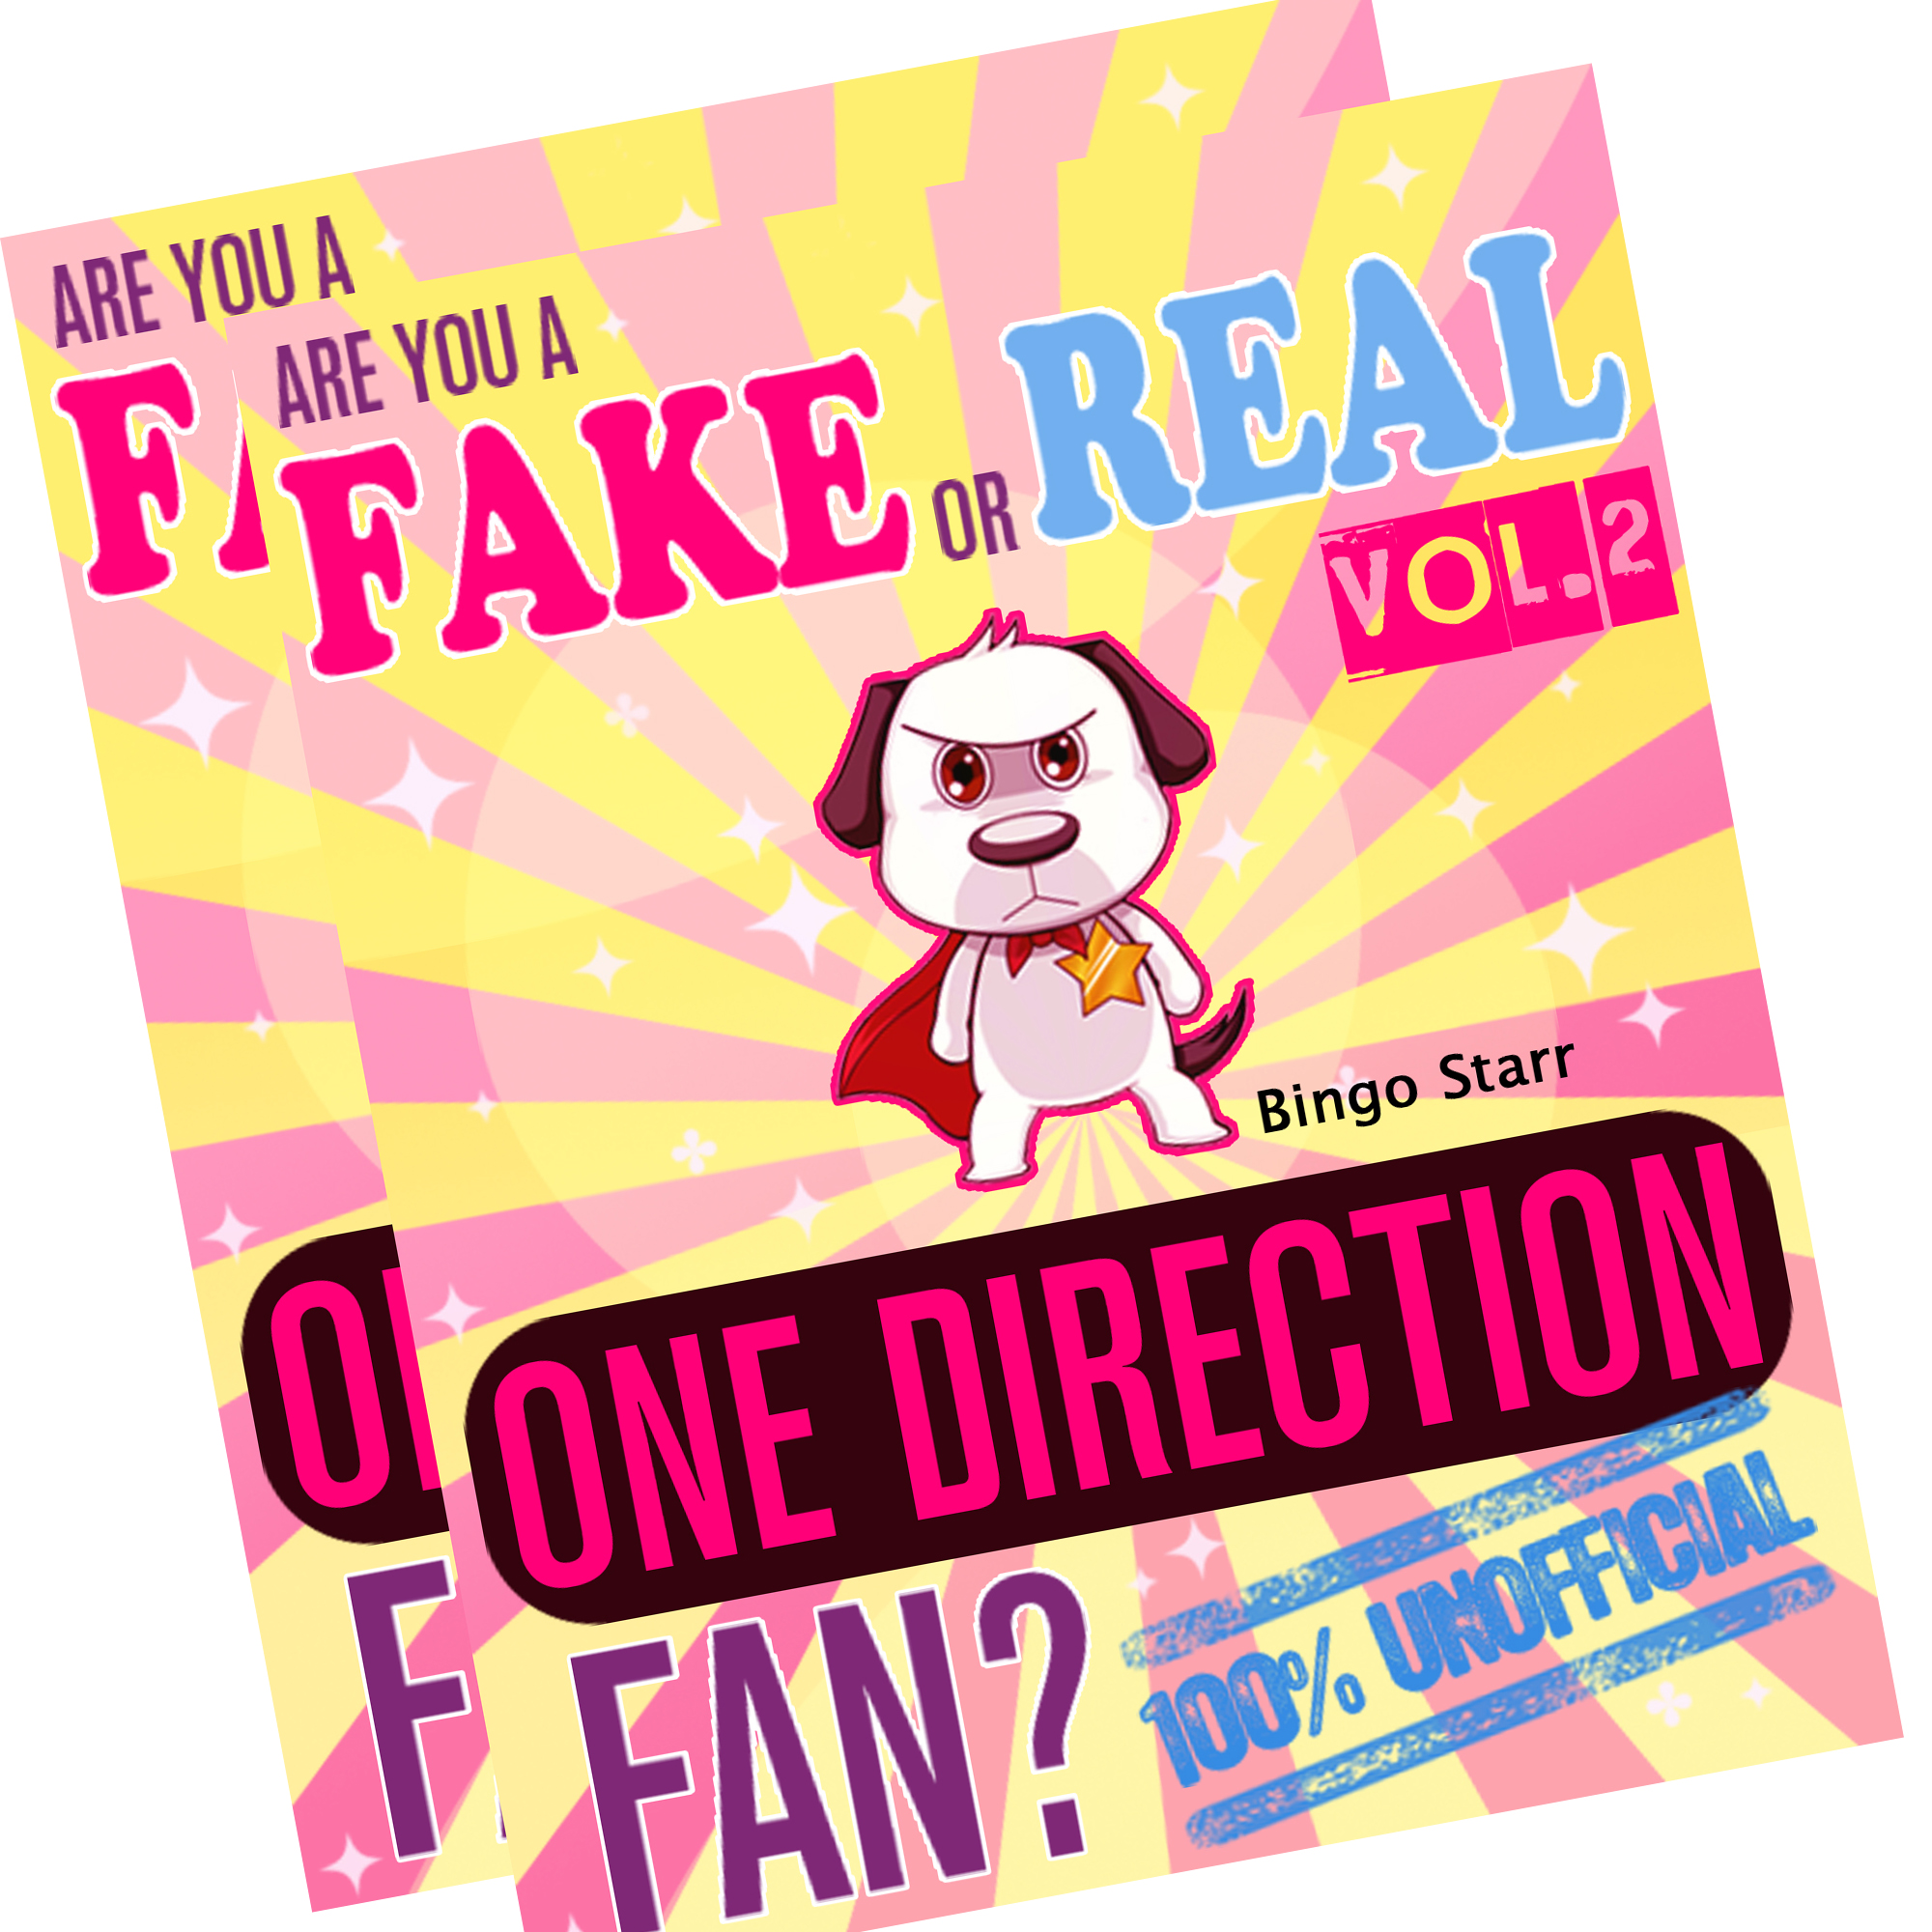 Are You a Fake or Real One Direction Fan? Bundle - Volume 1,2 - The 100% Unofficial Quiz and Facts Trivia Travel Set Game